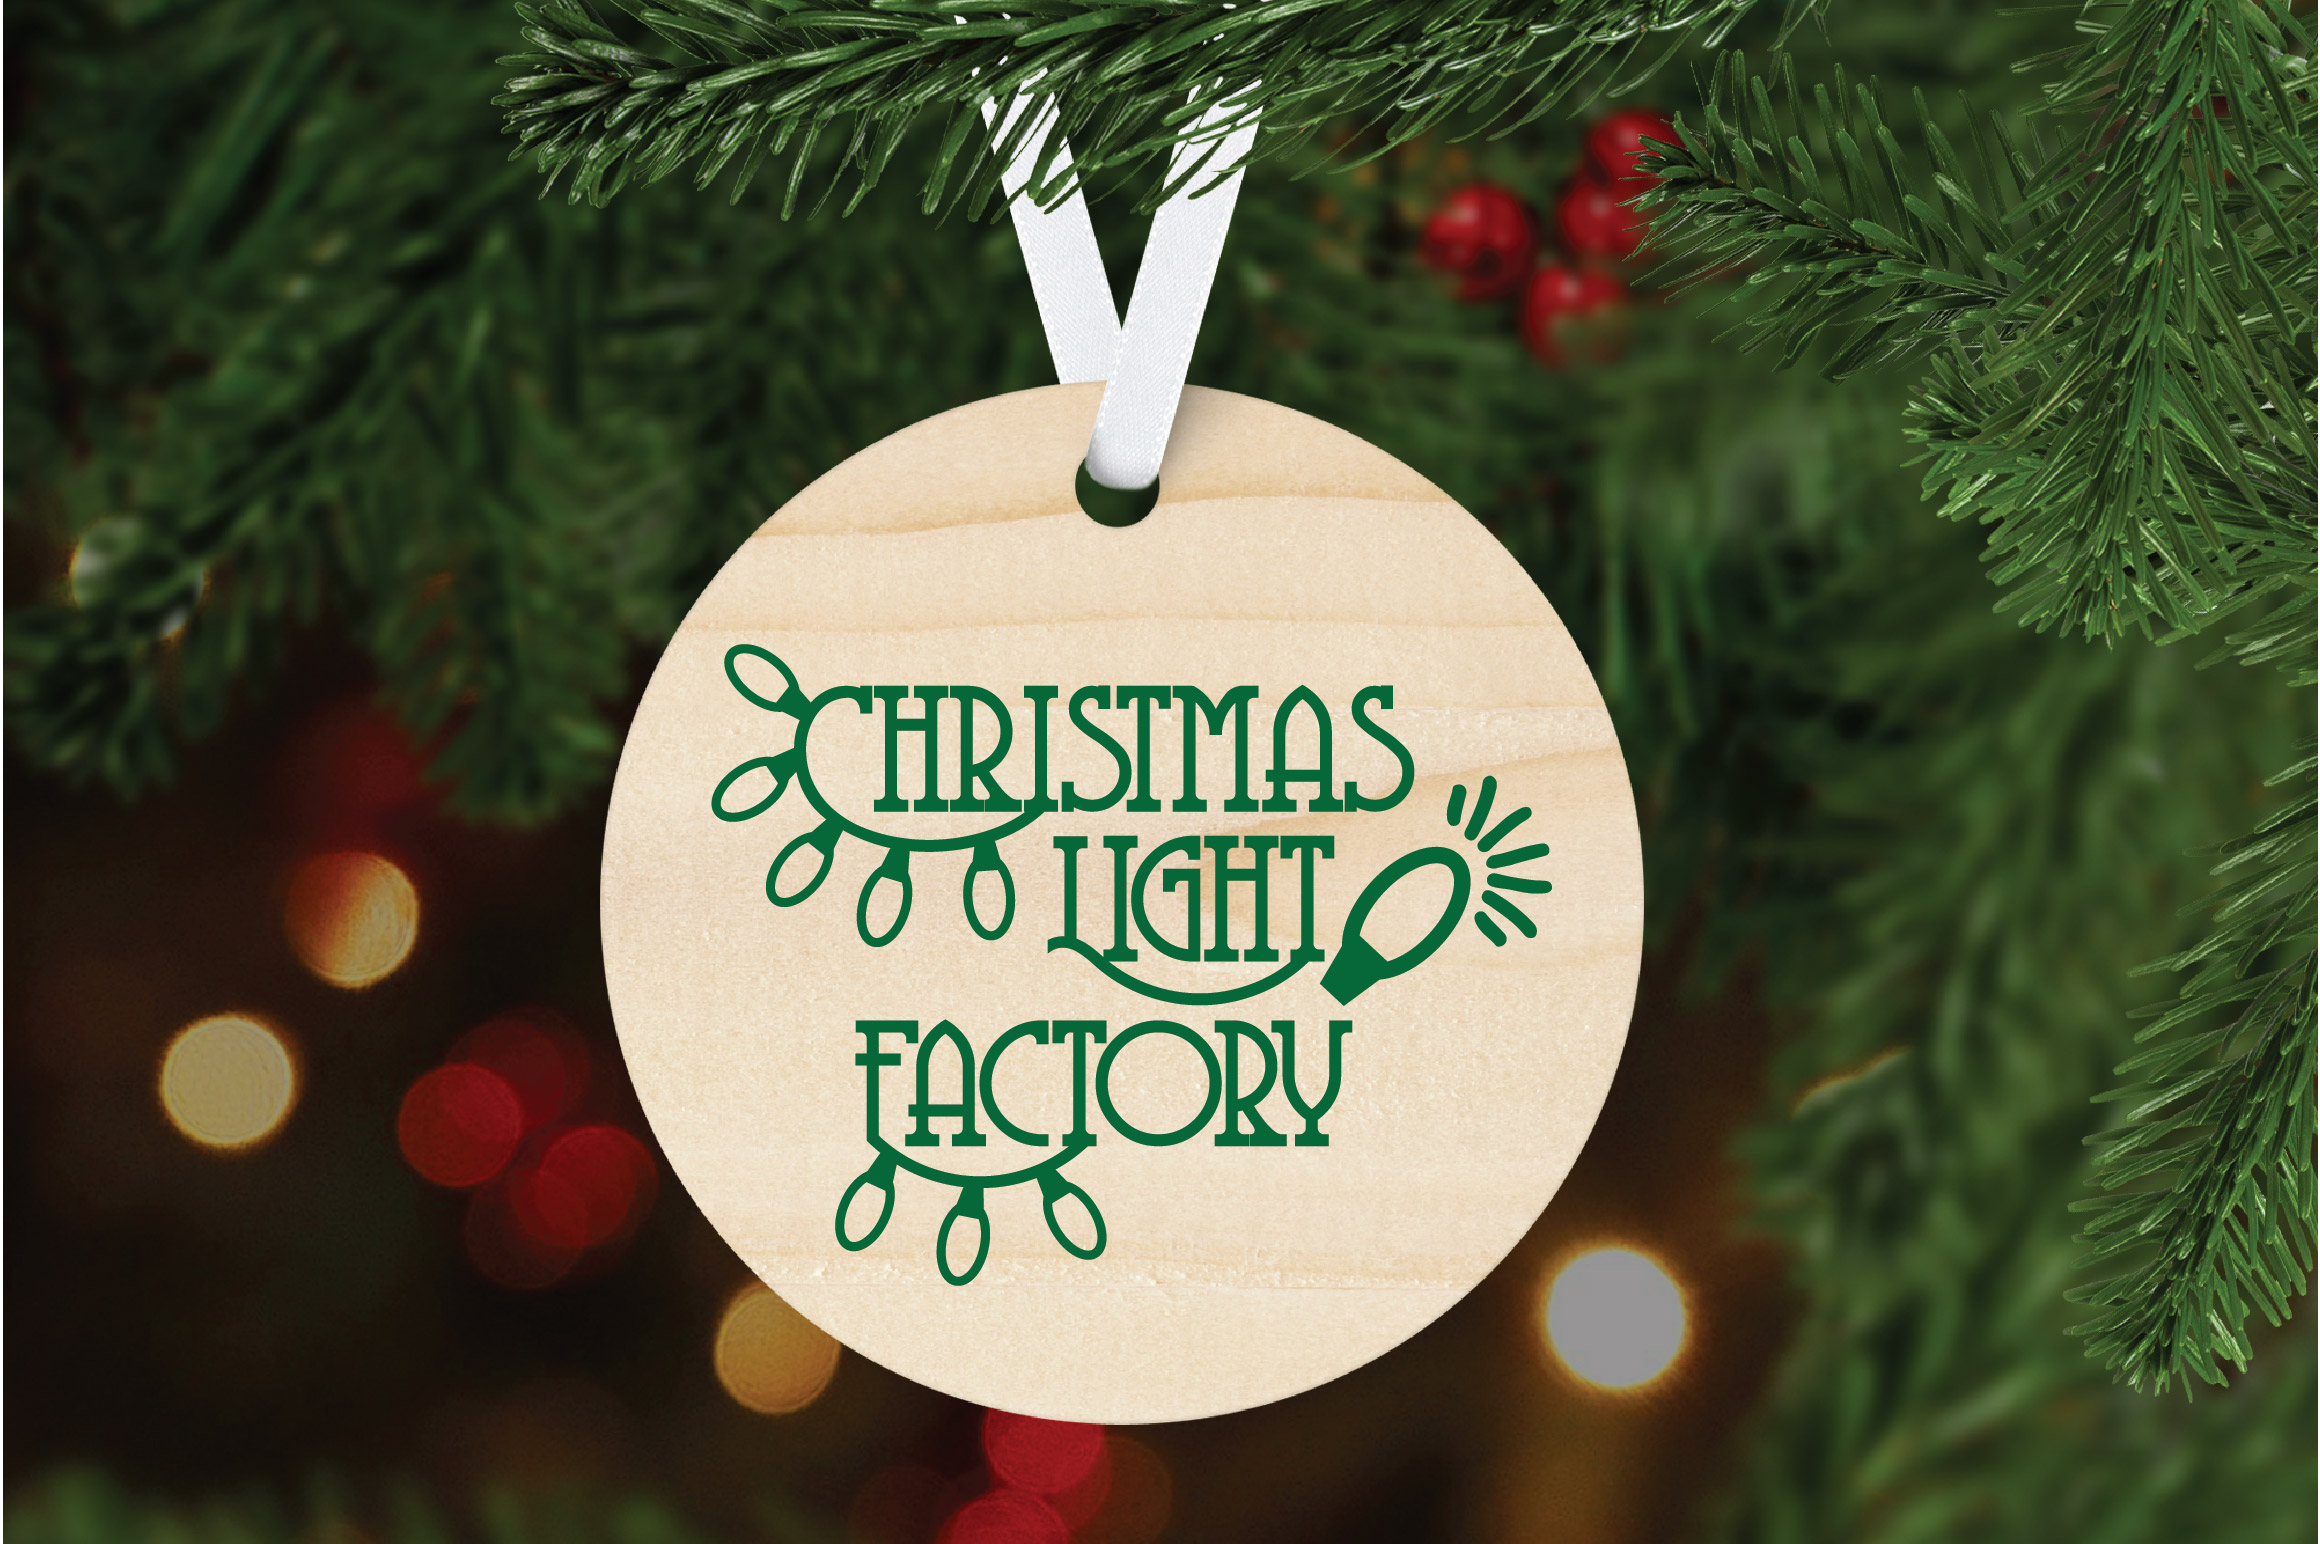 Christmas SVG Cut File - Christmas Light Factory SVG DXF PNG example image 7